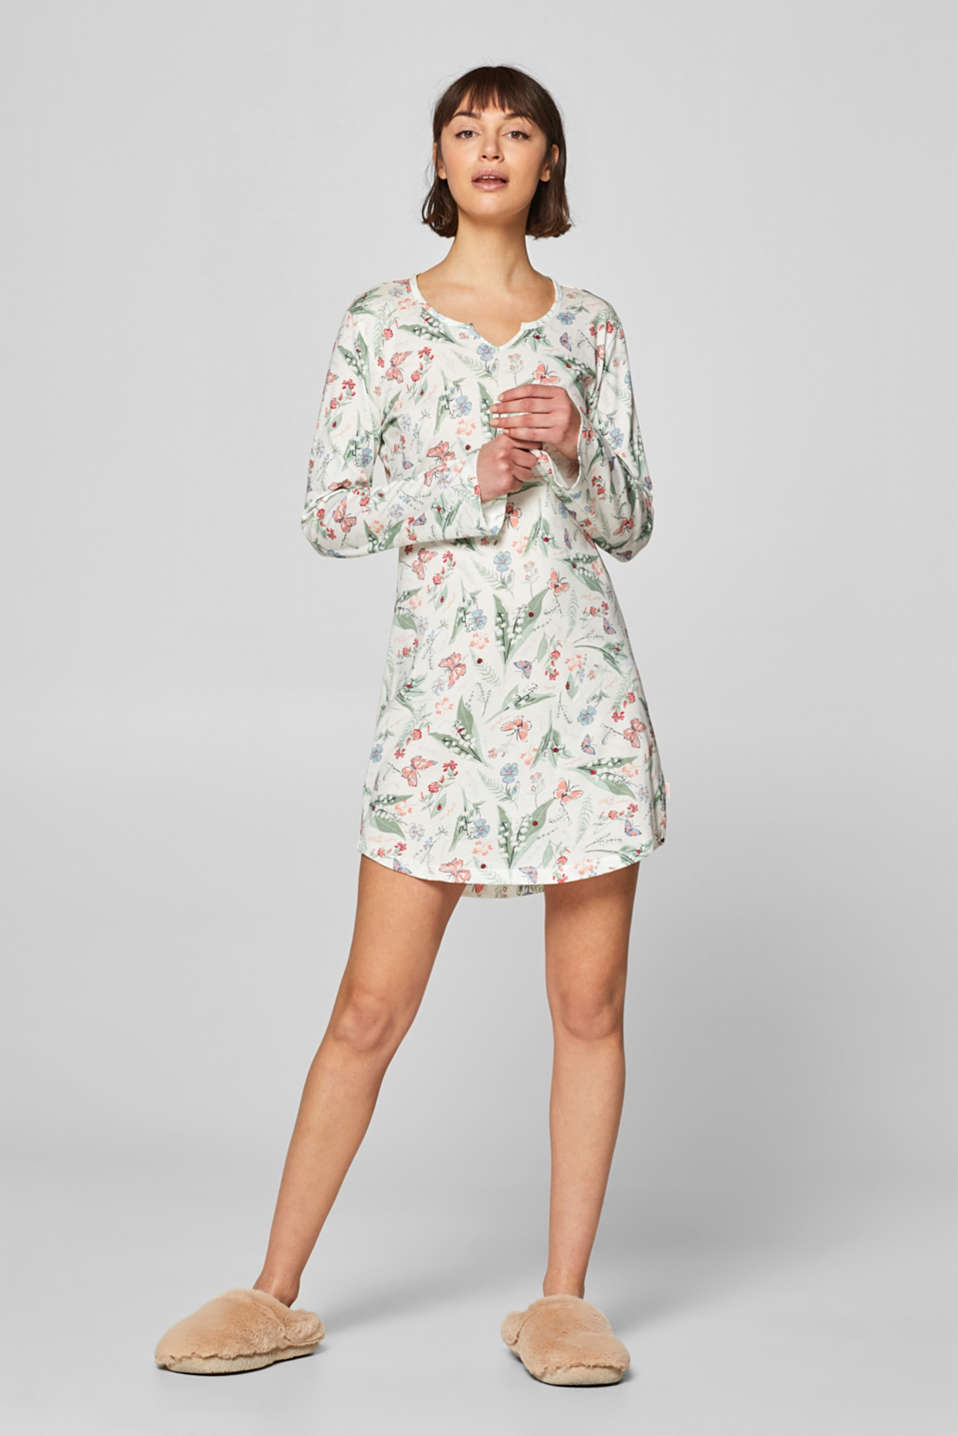 Esprit - Jersey nightdress with a floral print, 100% cotton